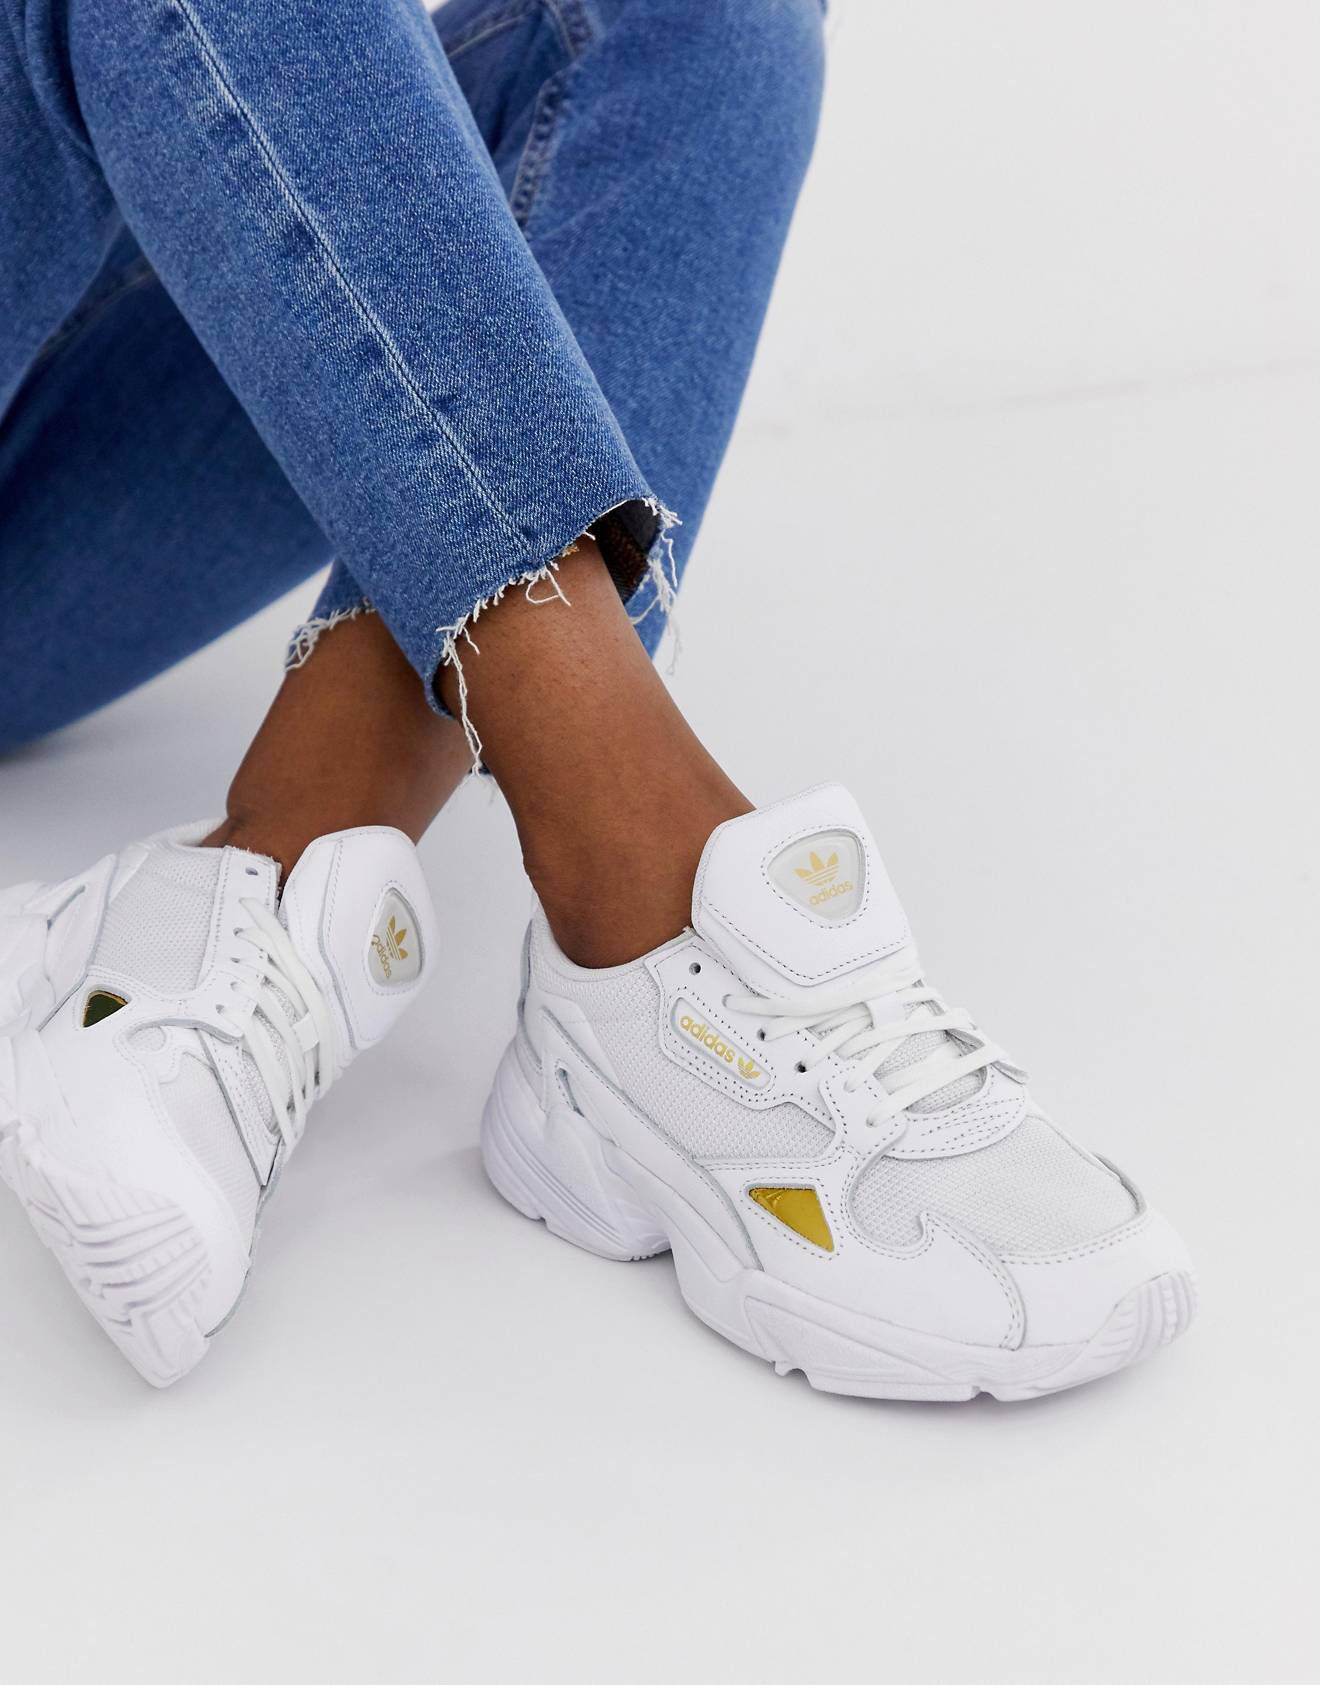 69ec6a155 adidas Originals Falcon trainers in white and gold in 2019